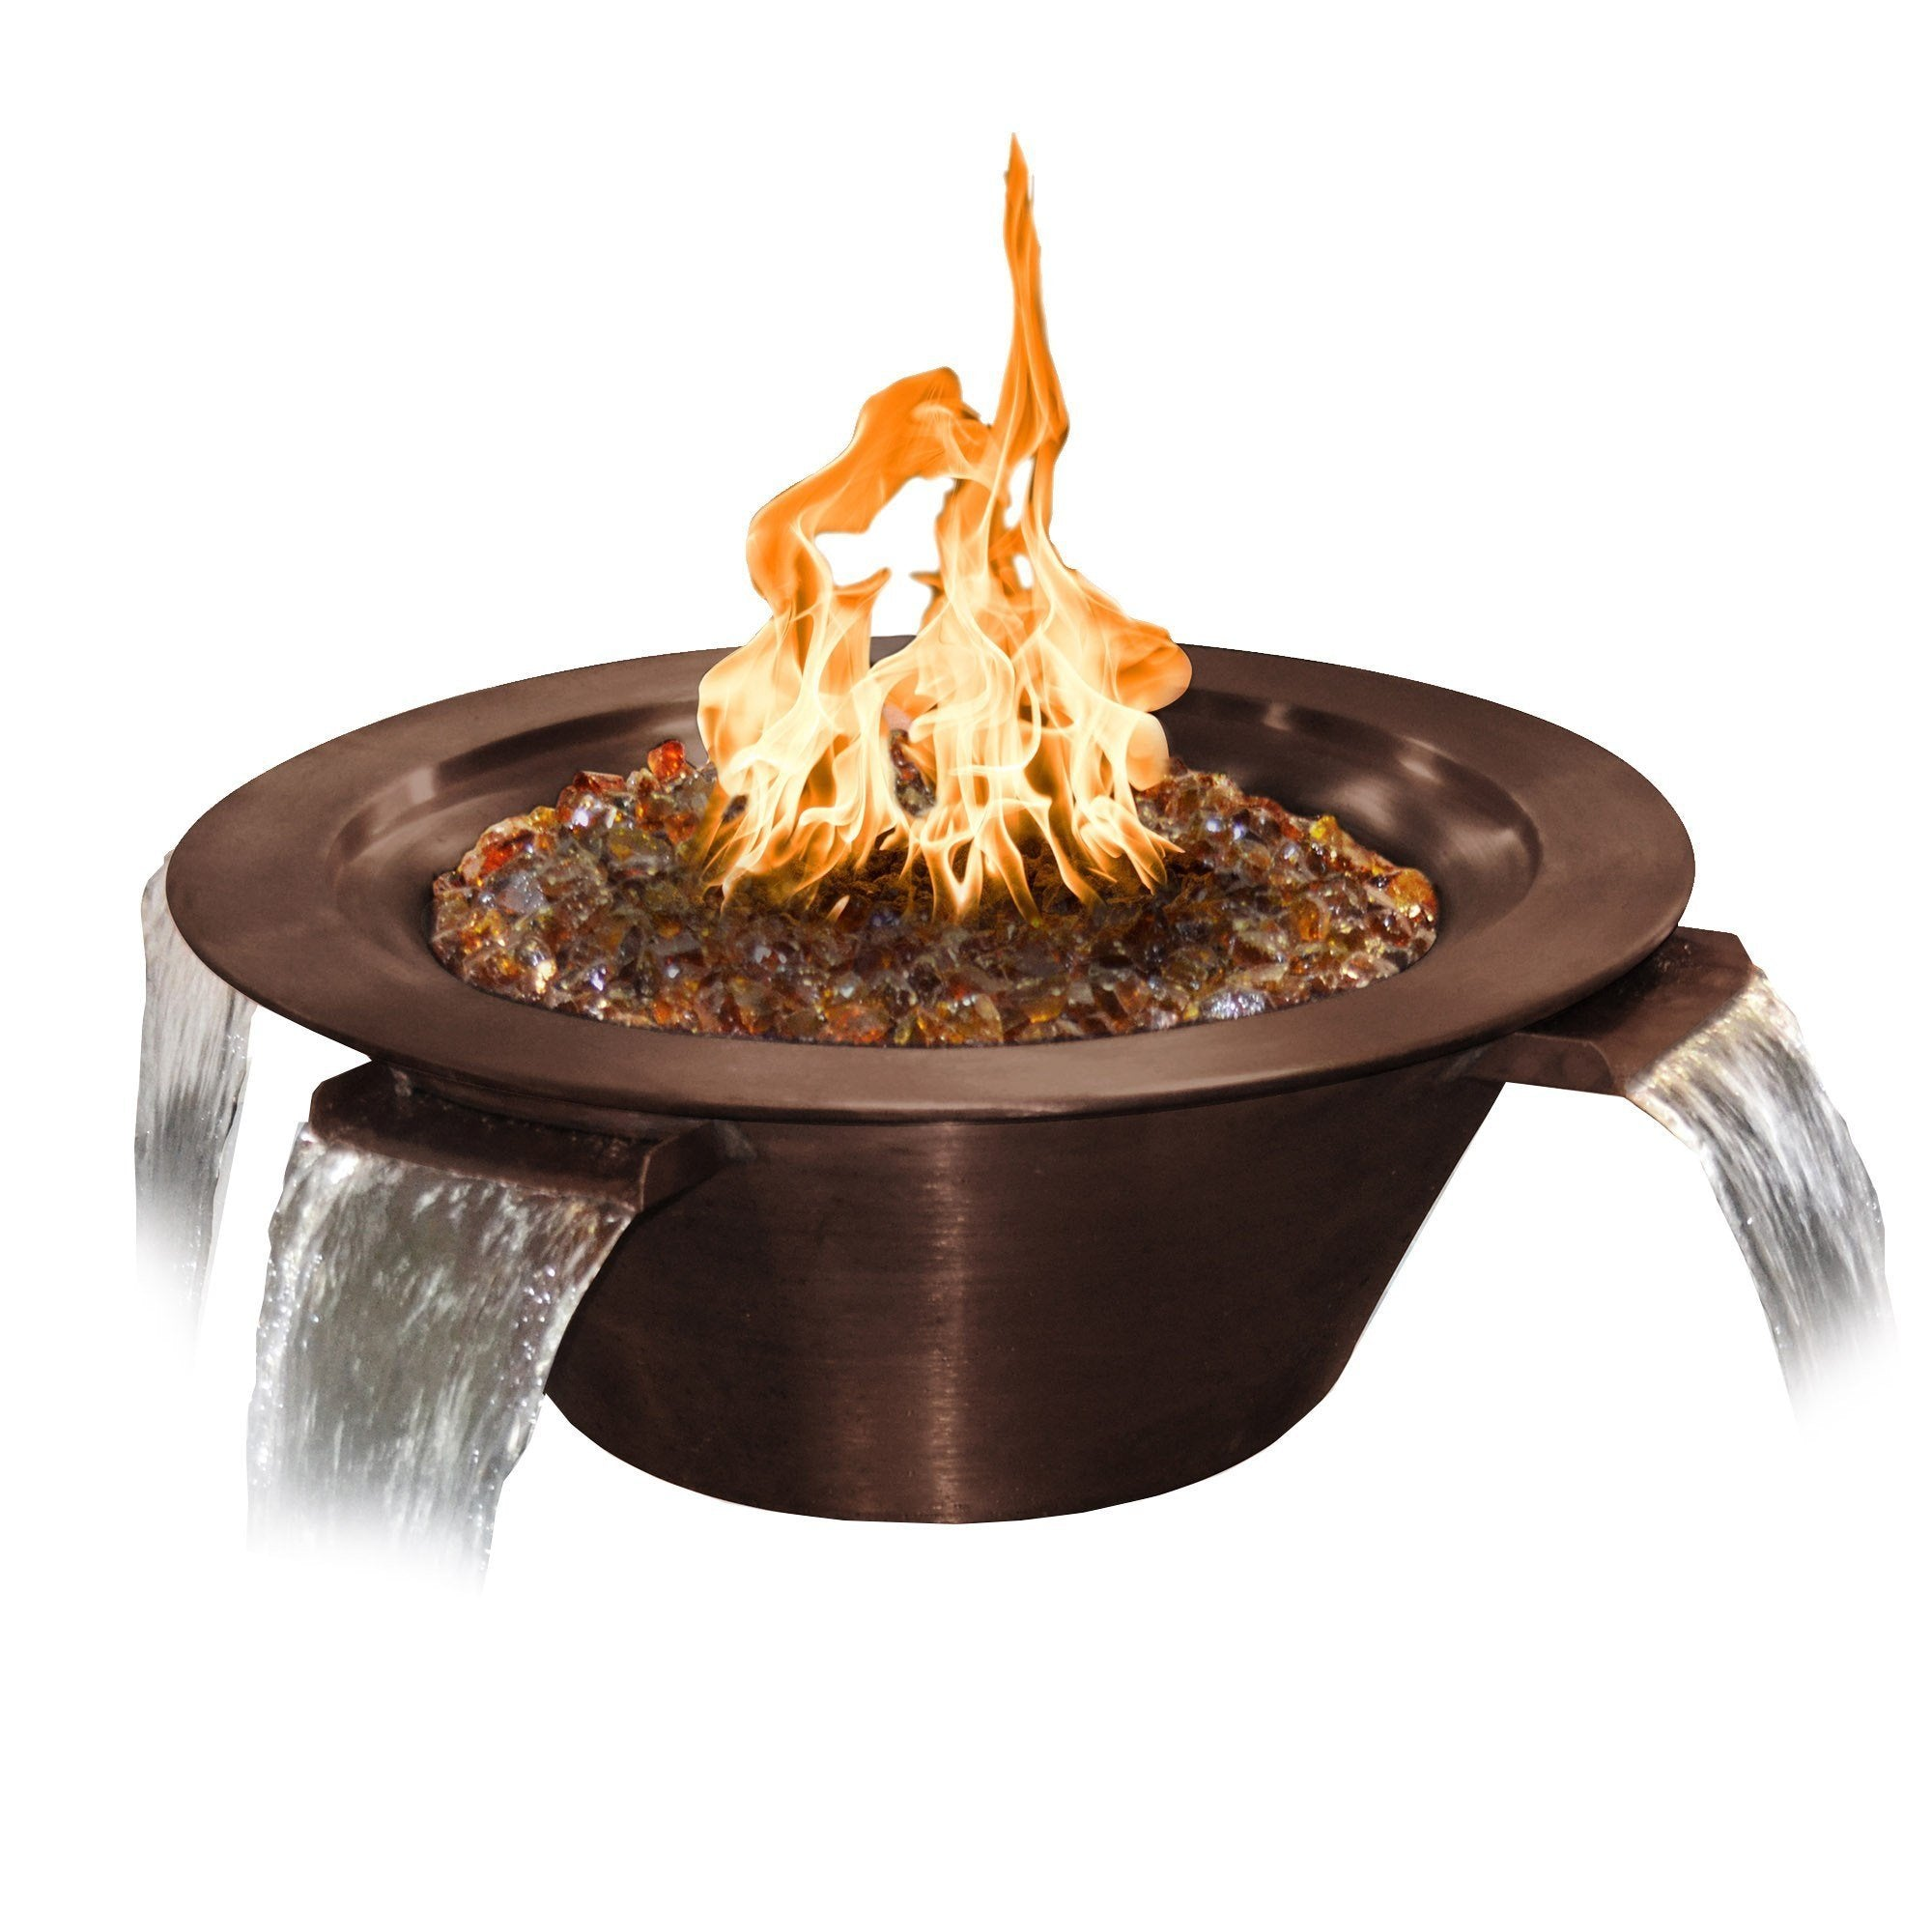 "TOP Fires by The Outdoor Plus Cazo 4-Way Copper Water & Fire Bowl 36"" - Fire Pit Oasis"